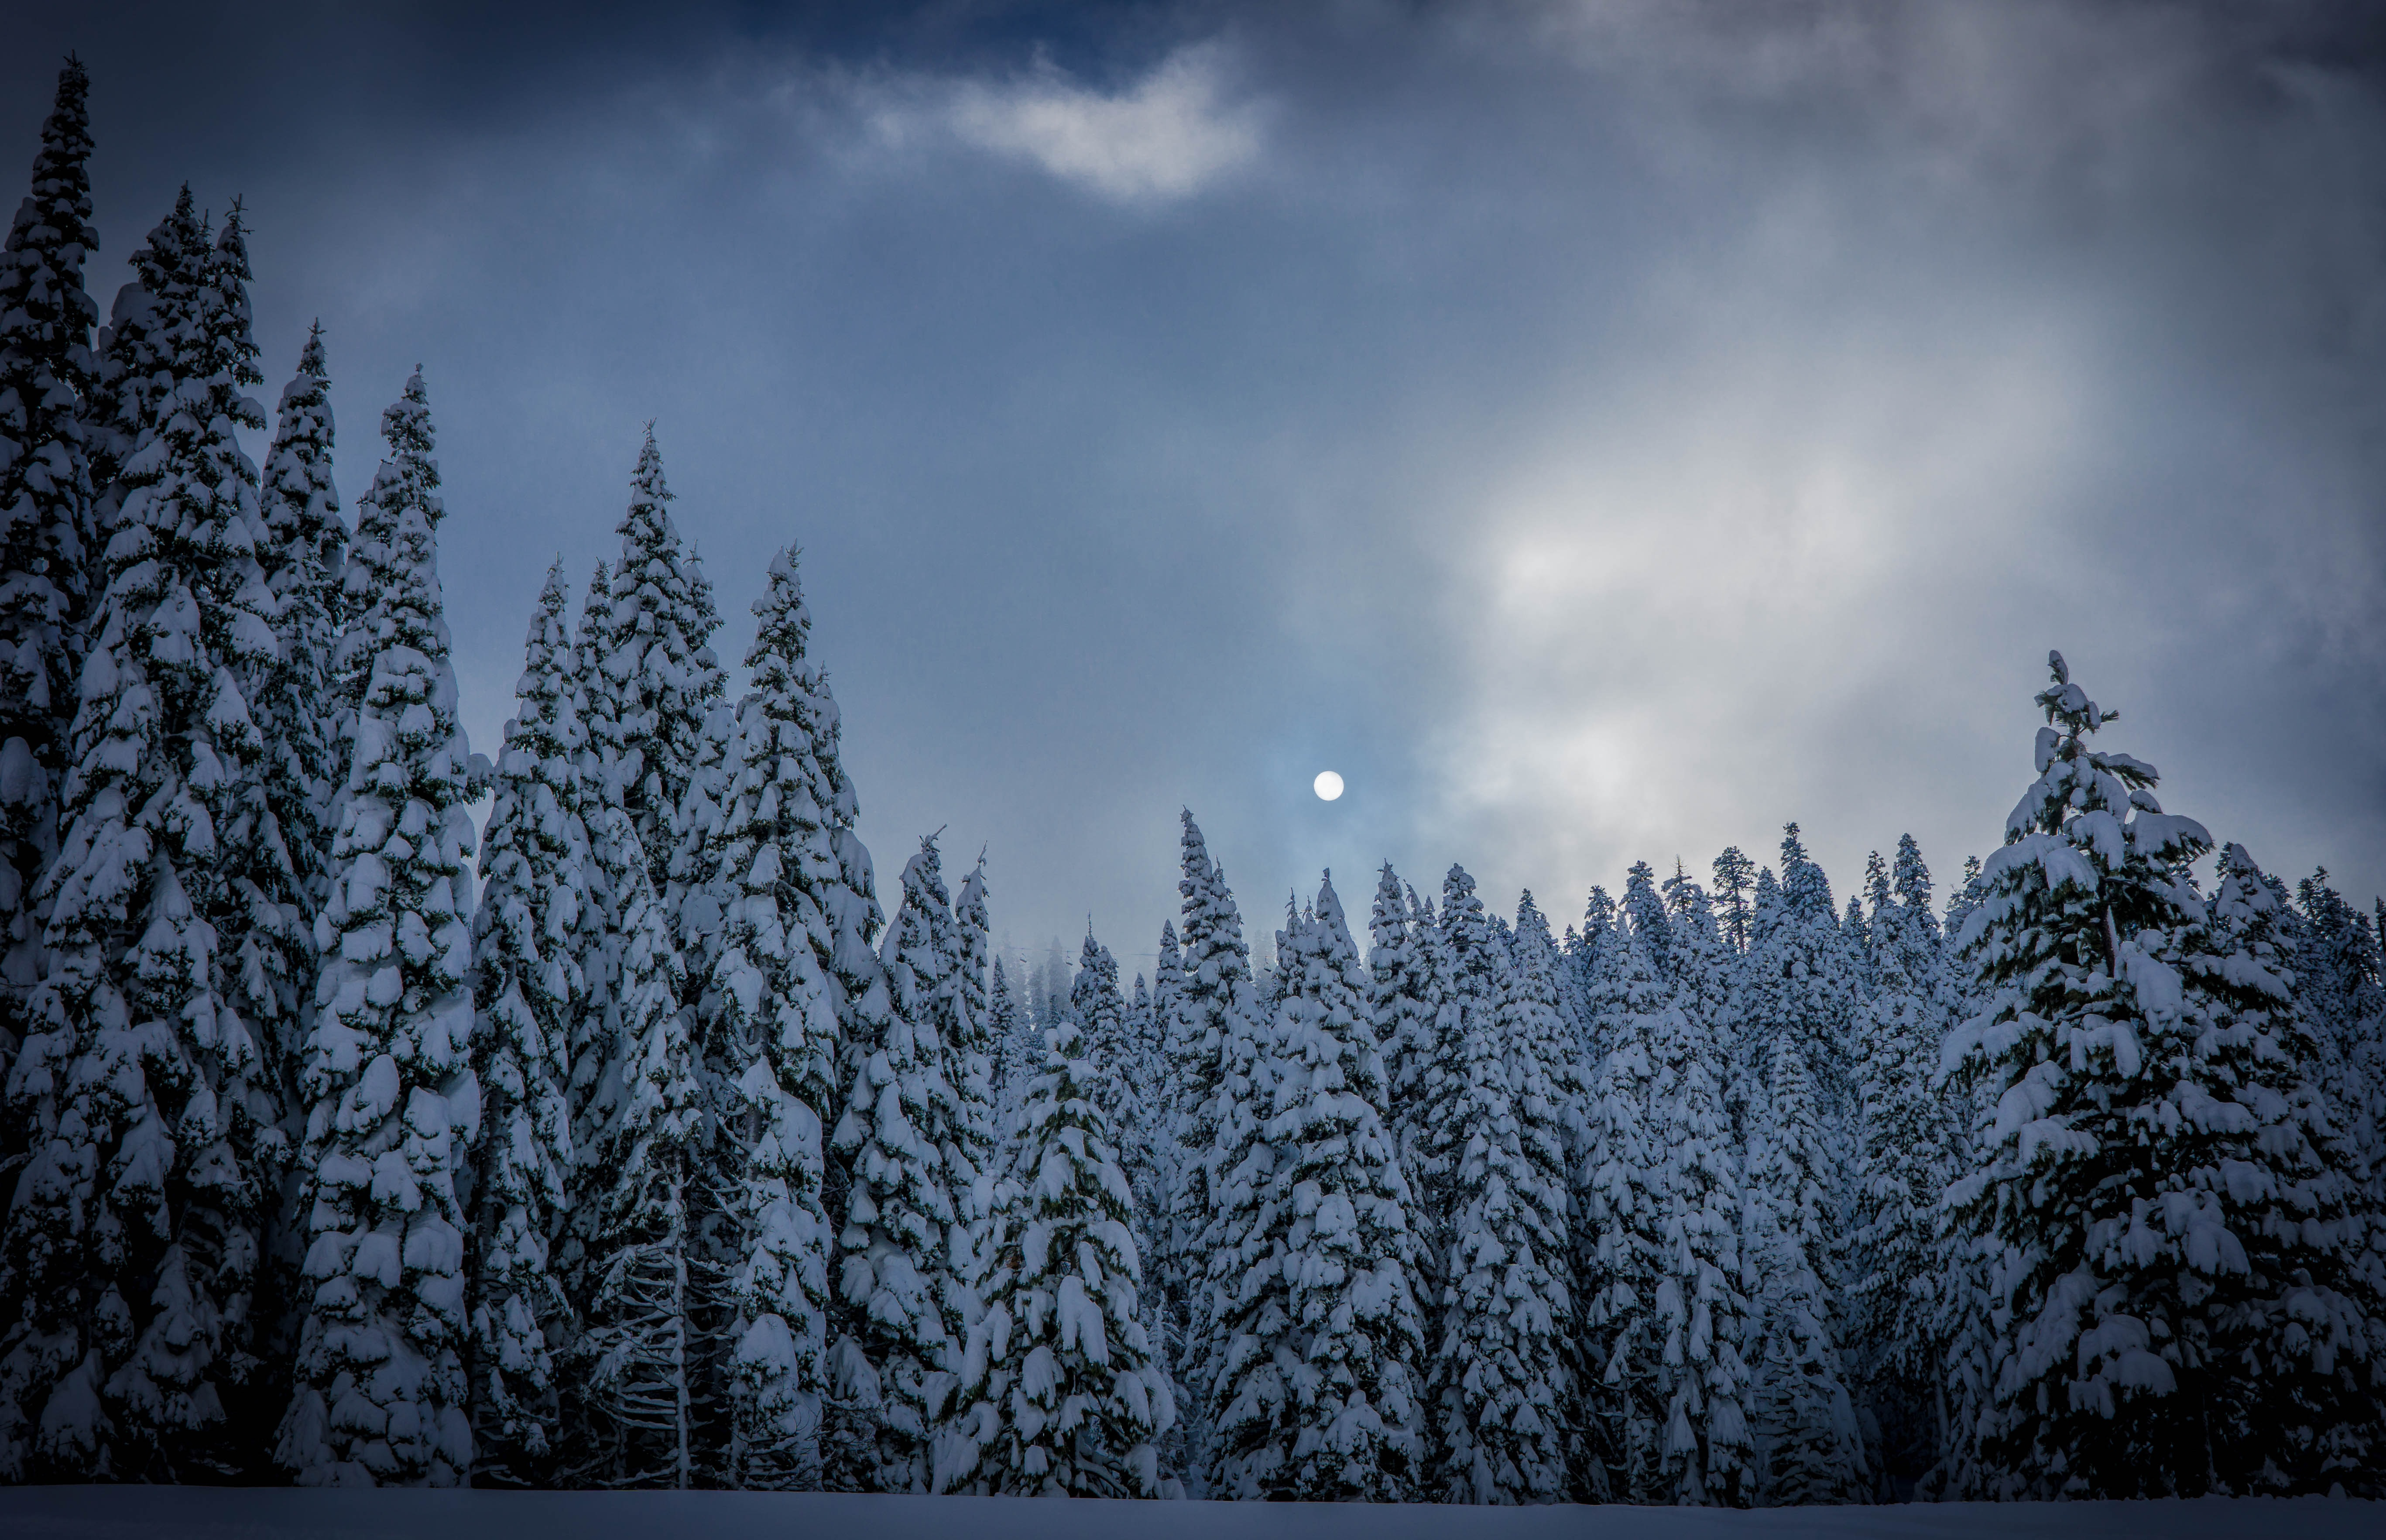 A darkened picture of the forest at Squaw Valley Resort with dark clouds in the sky